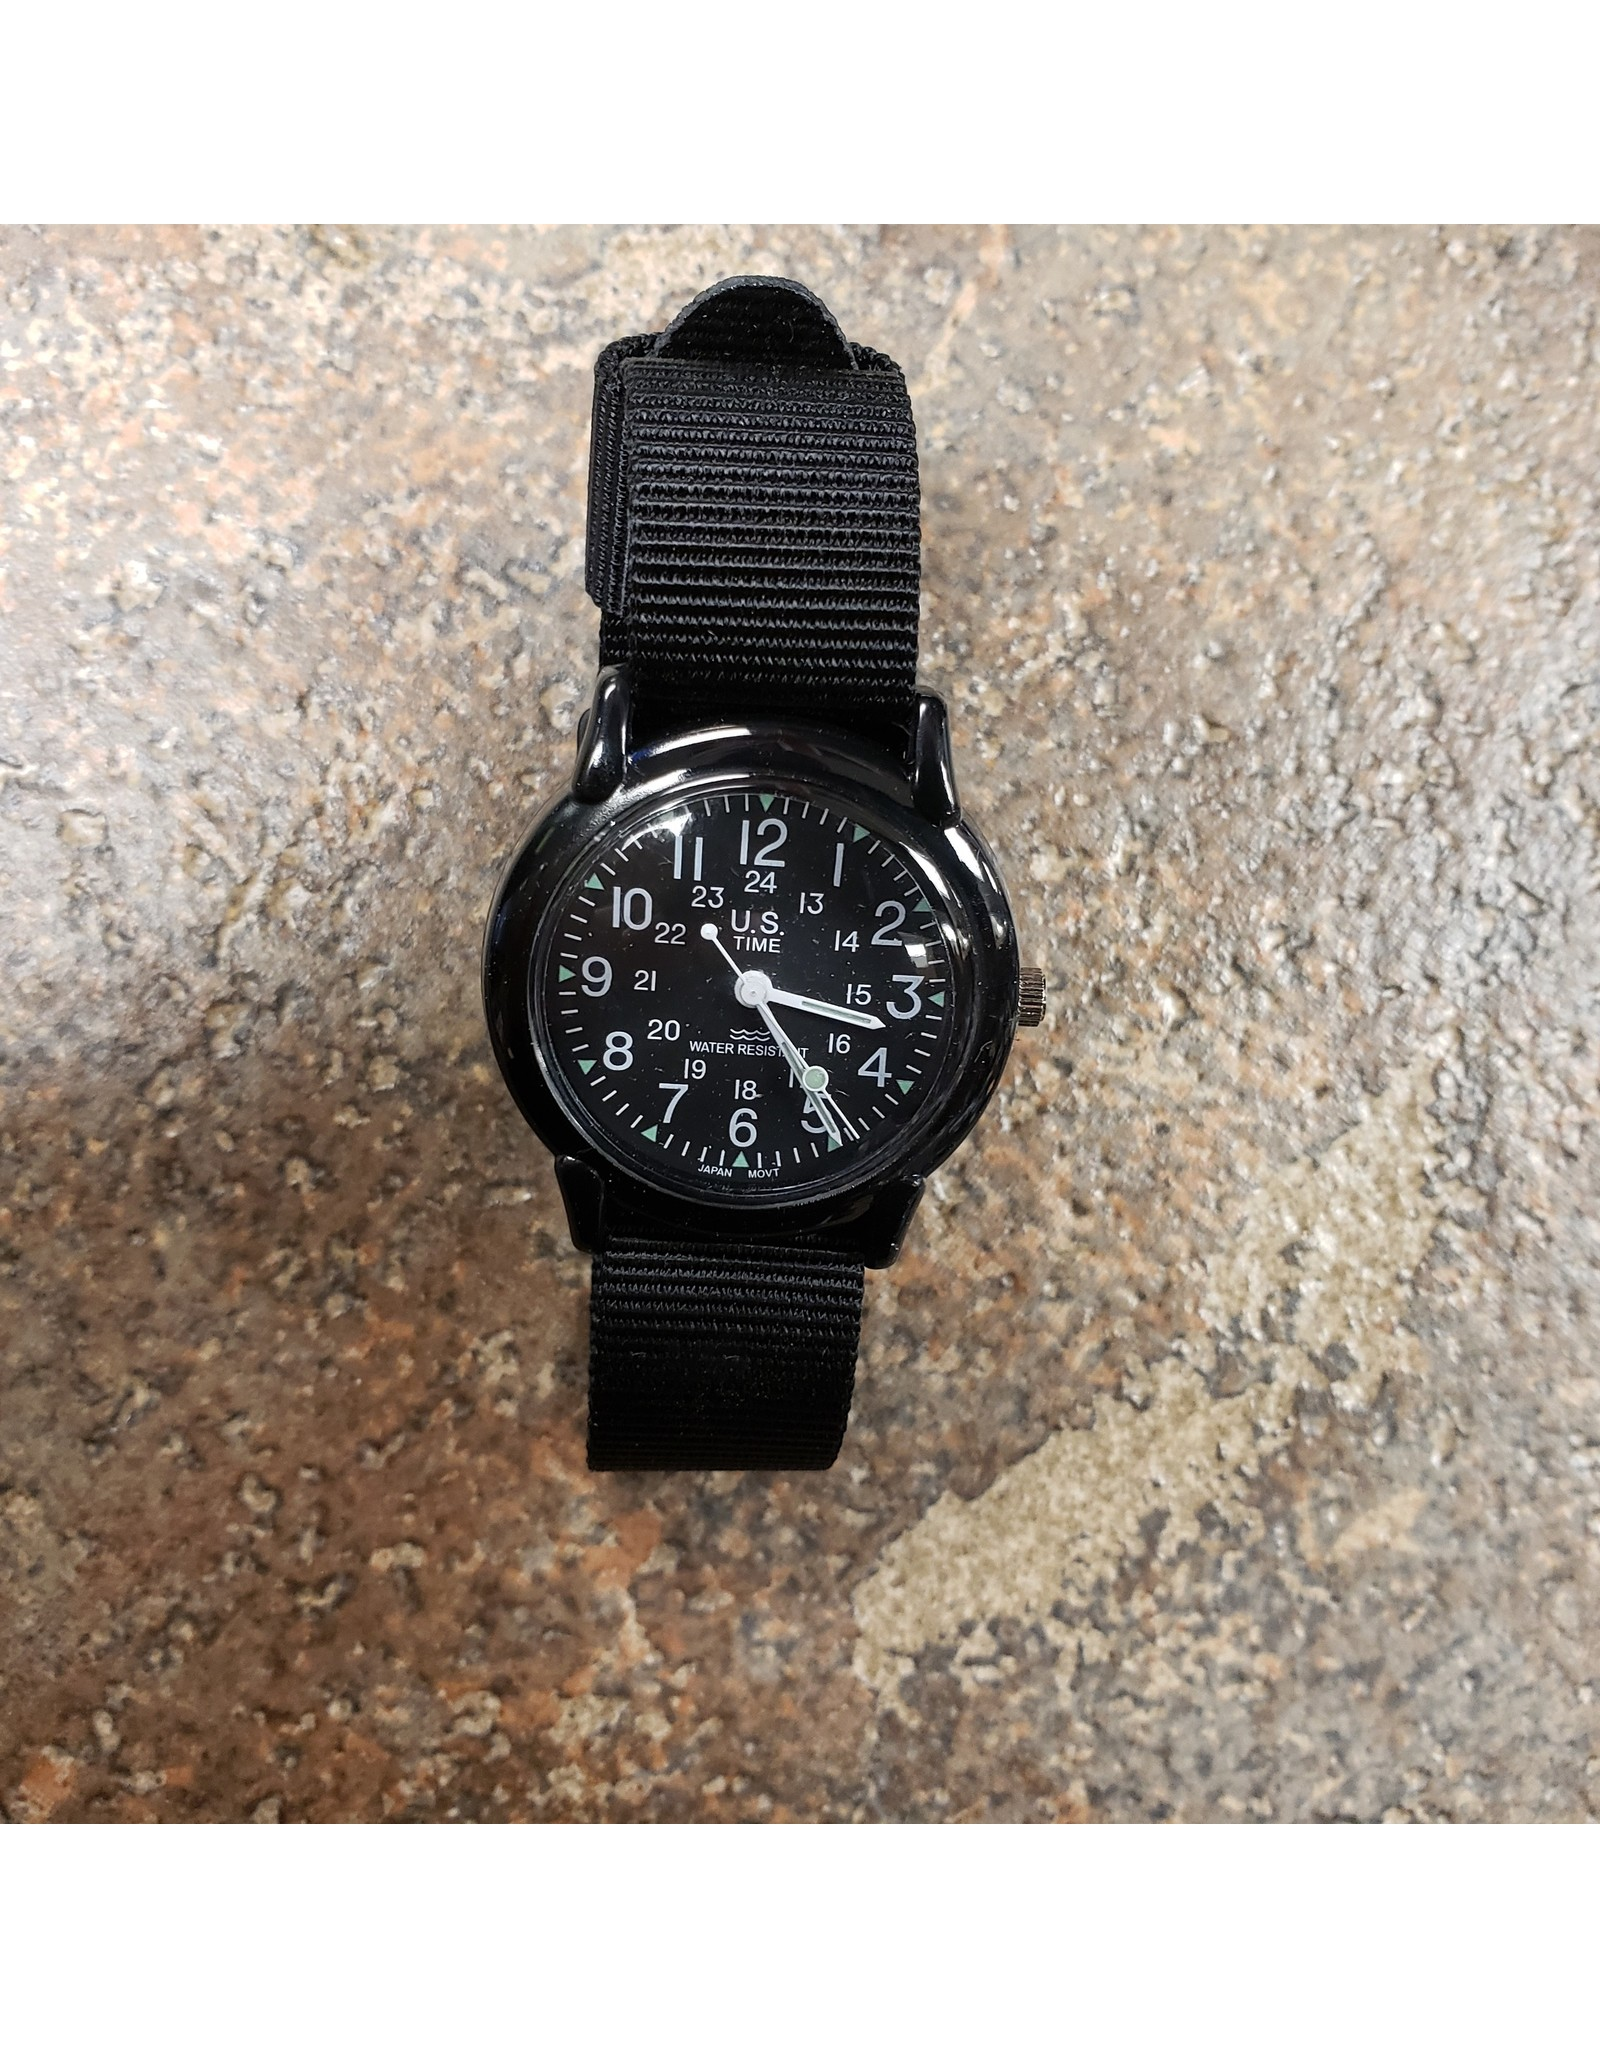 5IVE STAR GEAR 194A Ranger Watch Color:Black